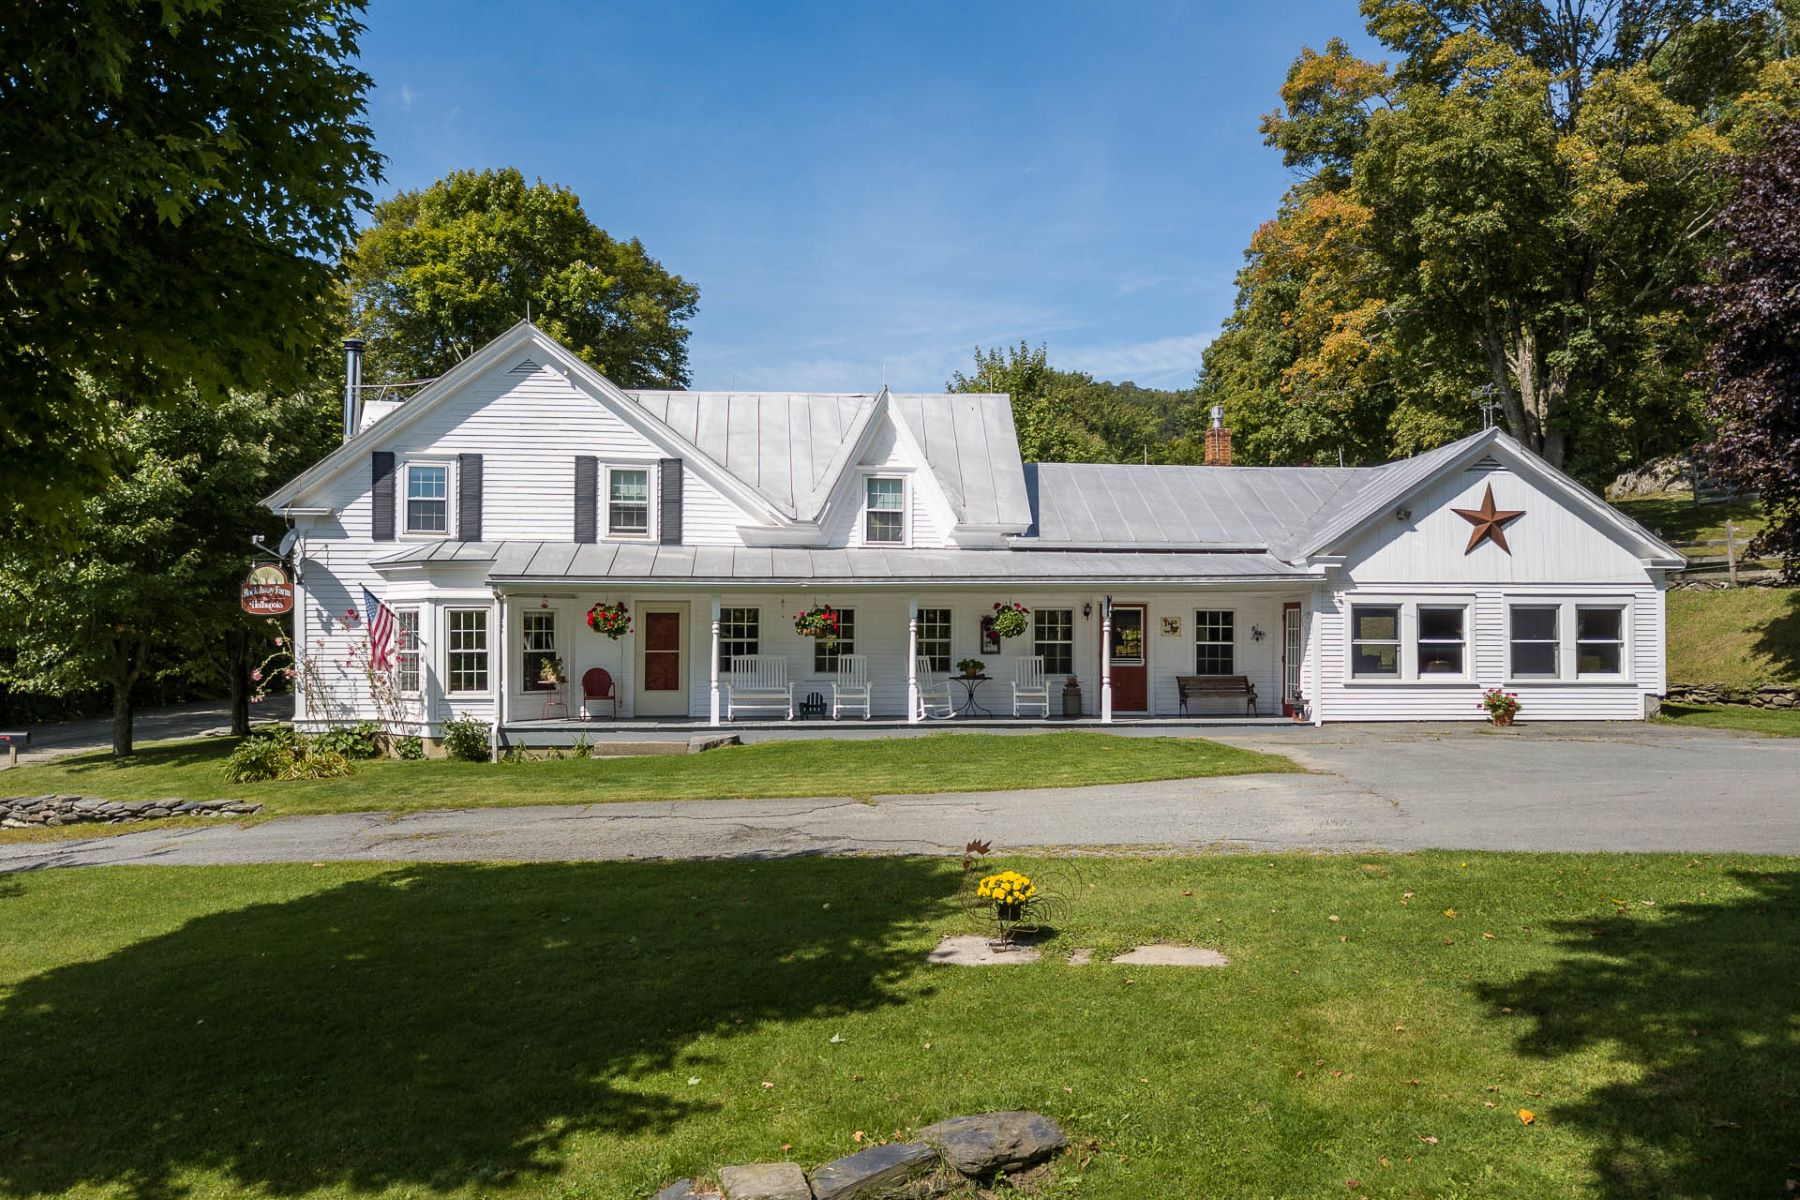 Single Family Homes for Sale at 560 Daniels Farm Road, Waterford 560 Daniels Farm Rd Waterford, Vermont 05819 United States